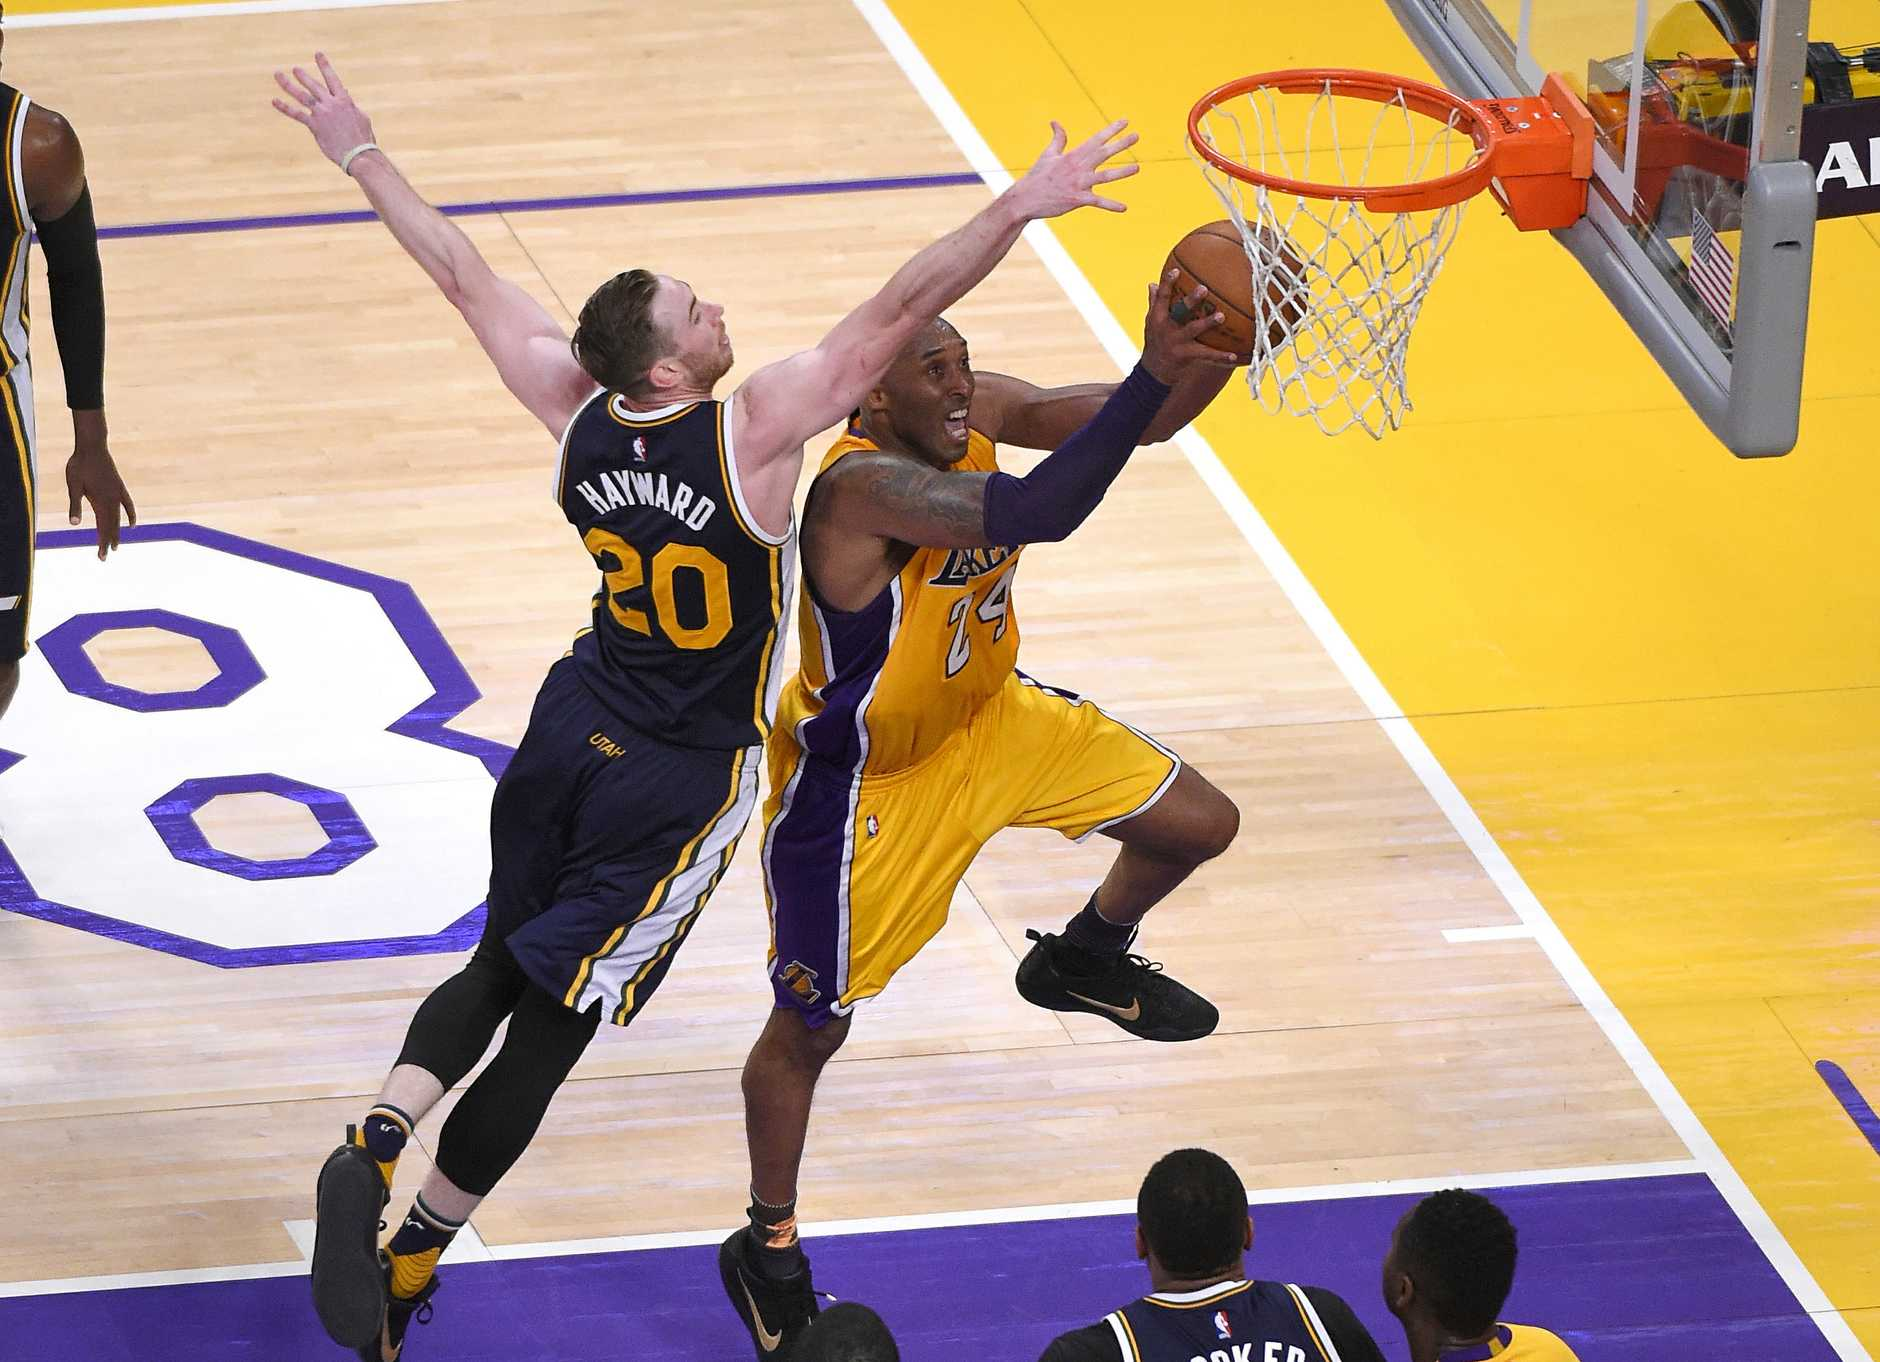 Bryant shoots as Utah Jazz forward Gordon Hayward defends during the second half. Photo: AP Photo/Mark J. Terrill.